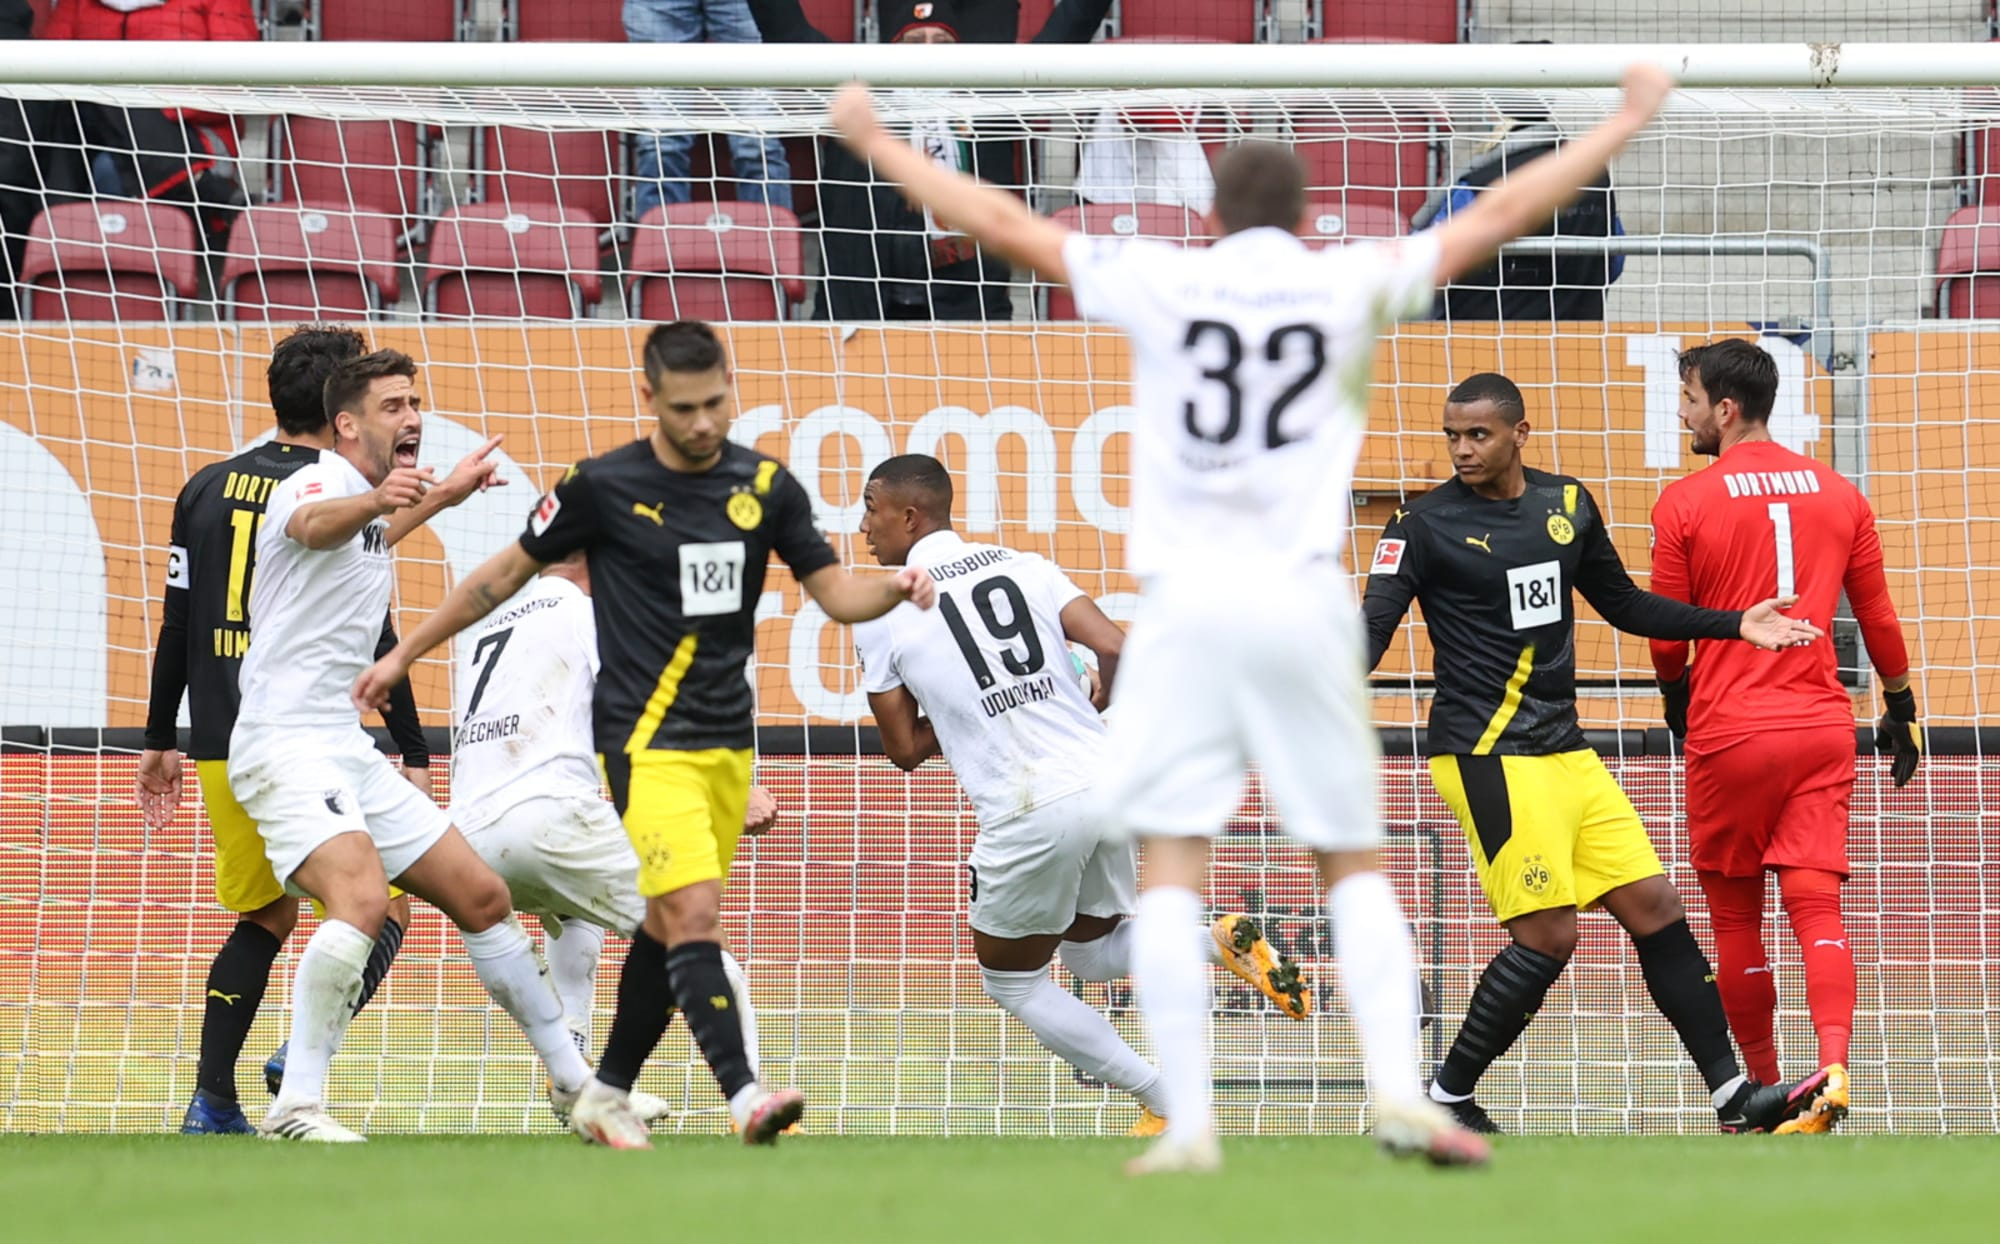 Uninspired Borussia Dortmund handed 2-0 defeat by Augsburg